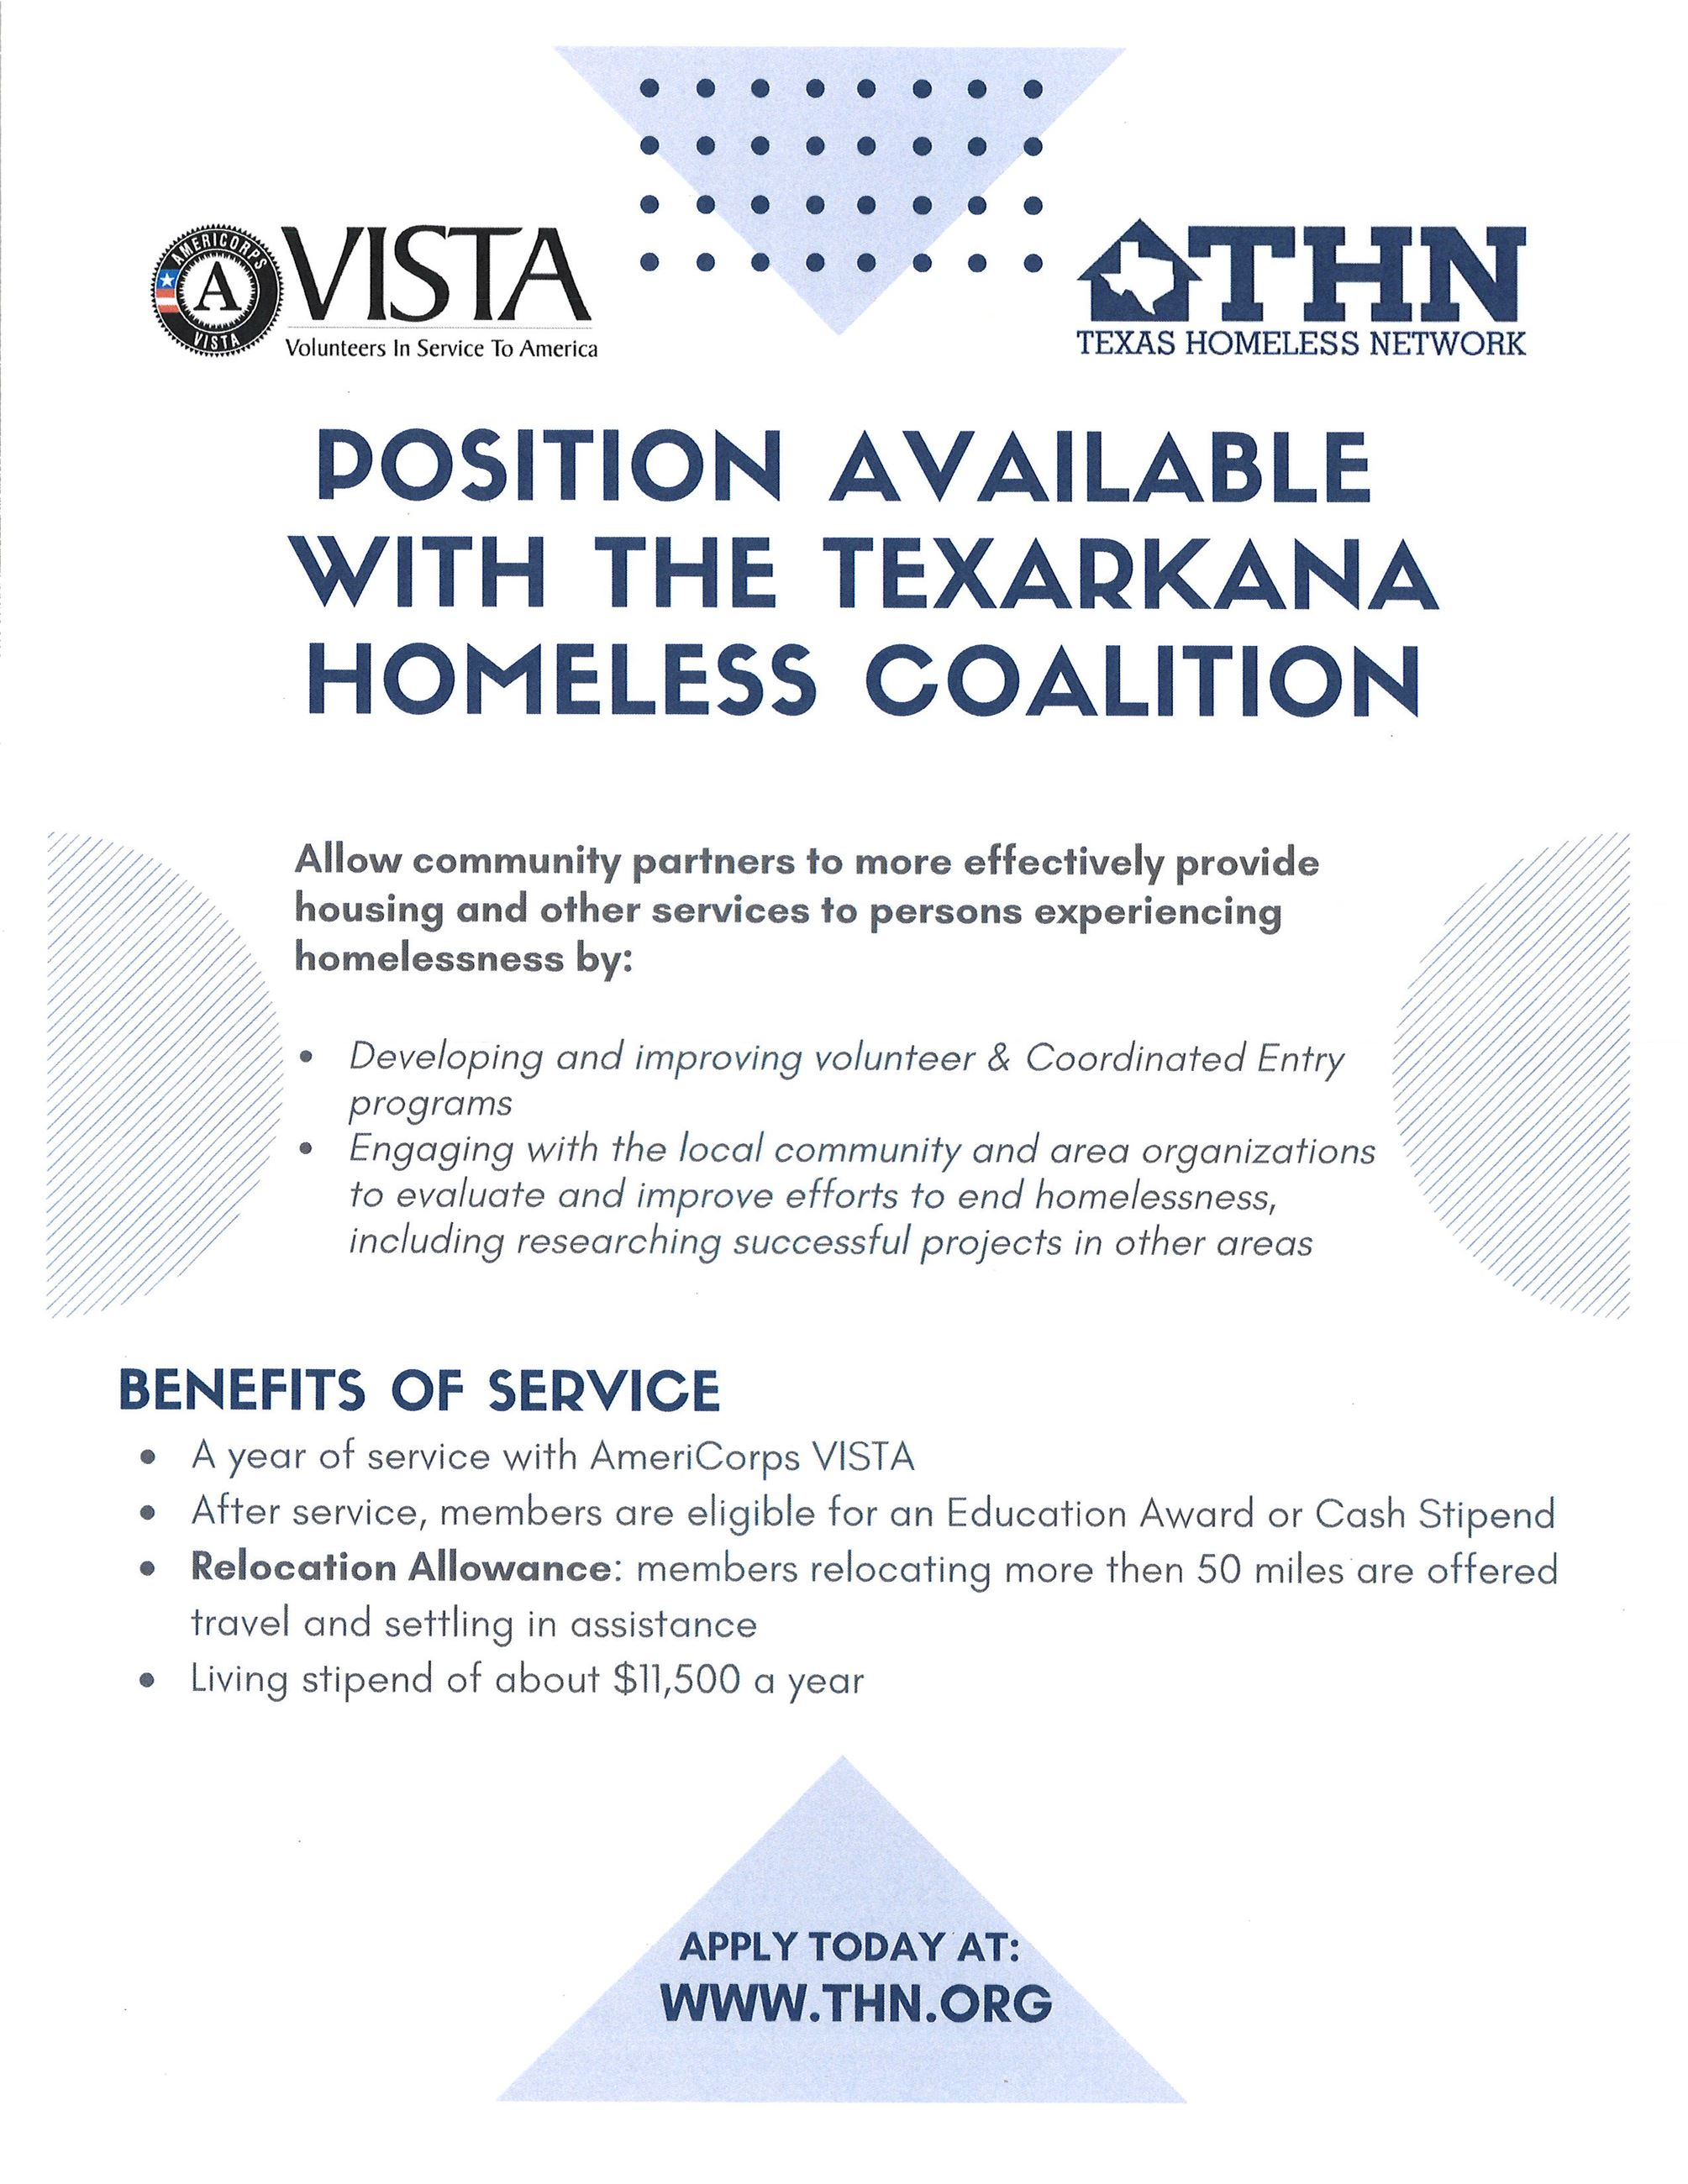 Texarkana Homeless Coalition Application